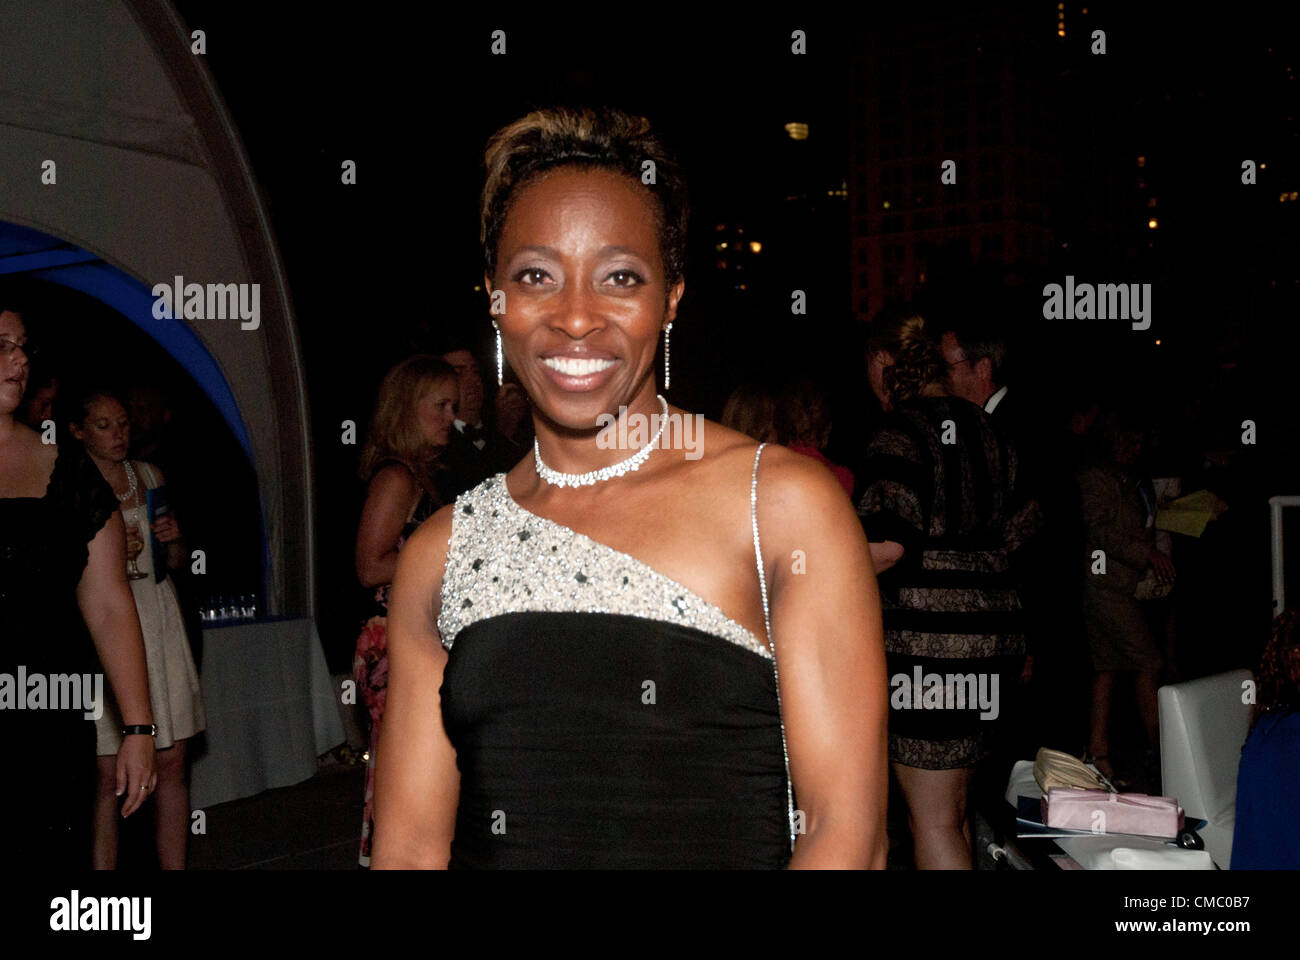 July 13, 2012 - Chicago, Illinois, U.S. - Athlete GAIL DEVERS is inducted into the U.S. Olympic Hall of Fame during - Stock Image